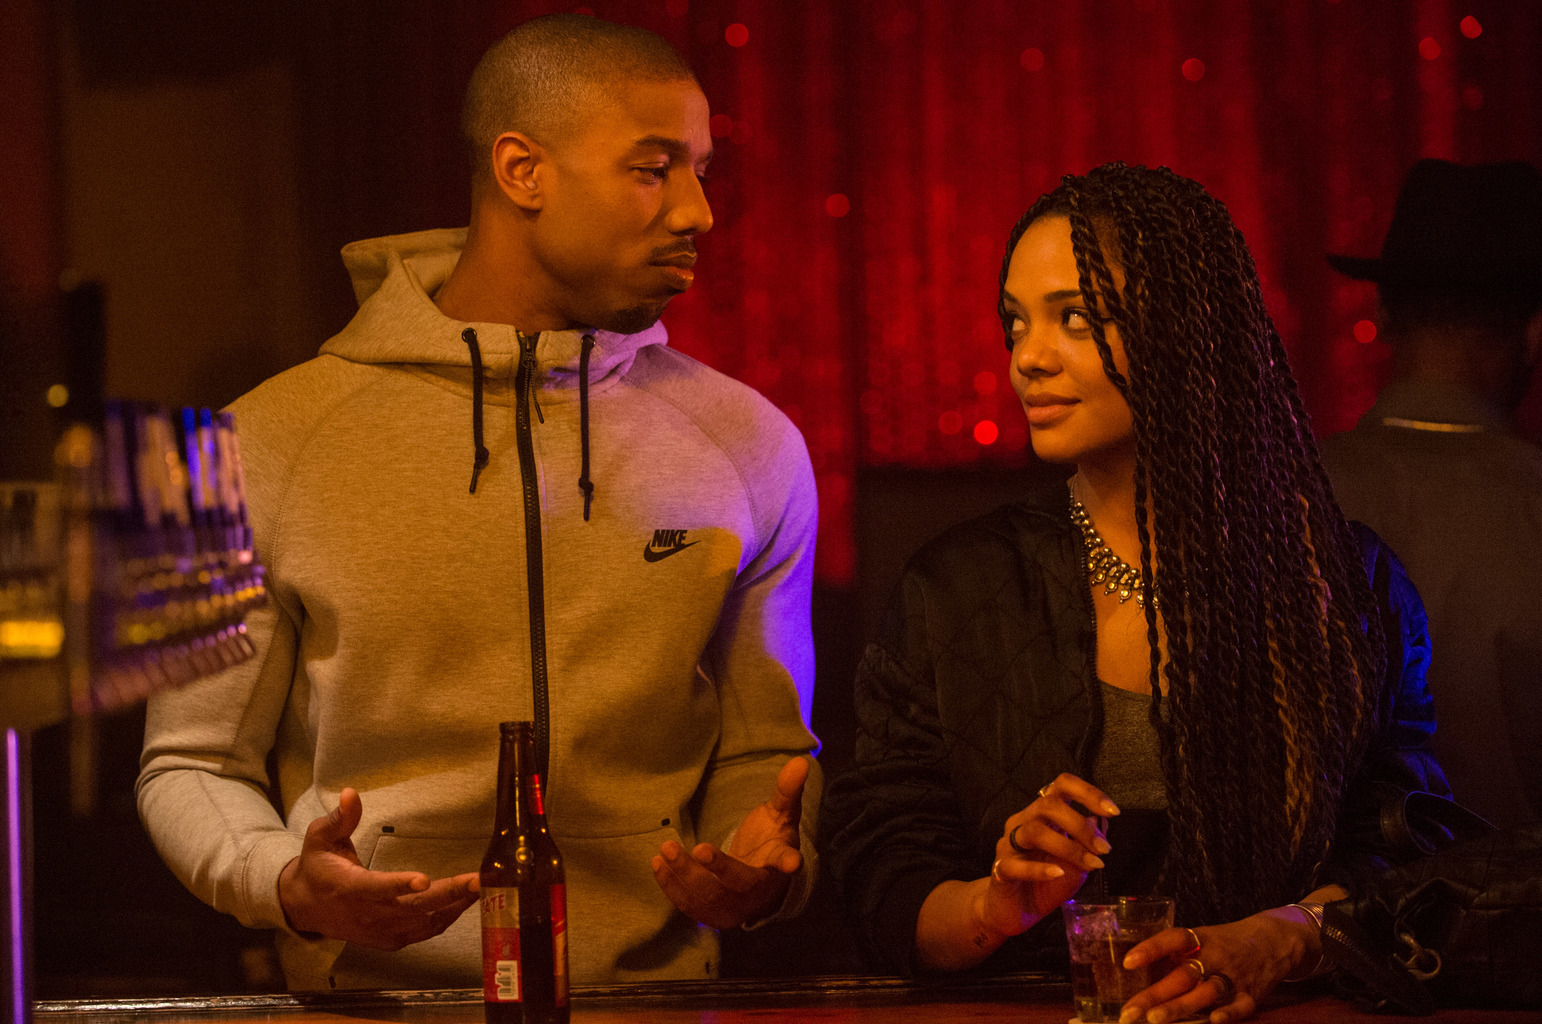 (L-r) Michael B. Jordan as Adonis Johnson and Tessa Thompson as Bianca in Metro-Goldwyn-Mayer Pictures', Warner Bros. Pictures' and New Line Cinema's drama Creed, a Warner Bros. Pictures release.